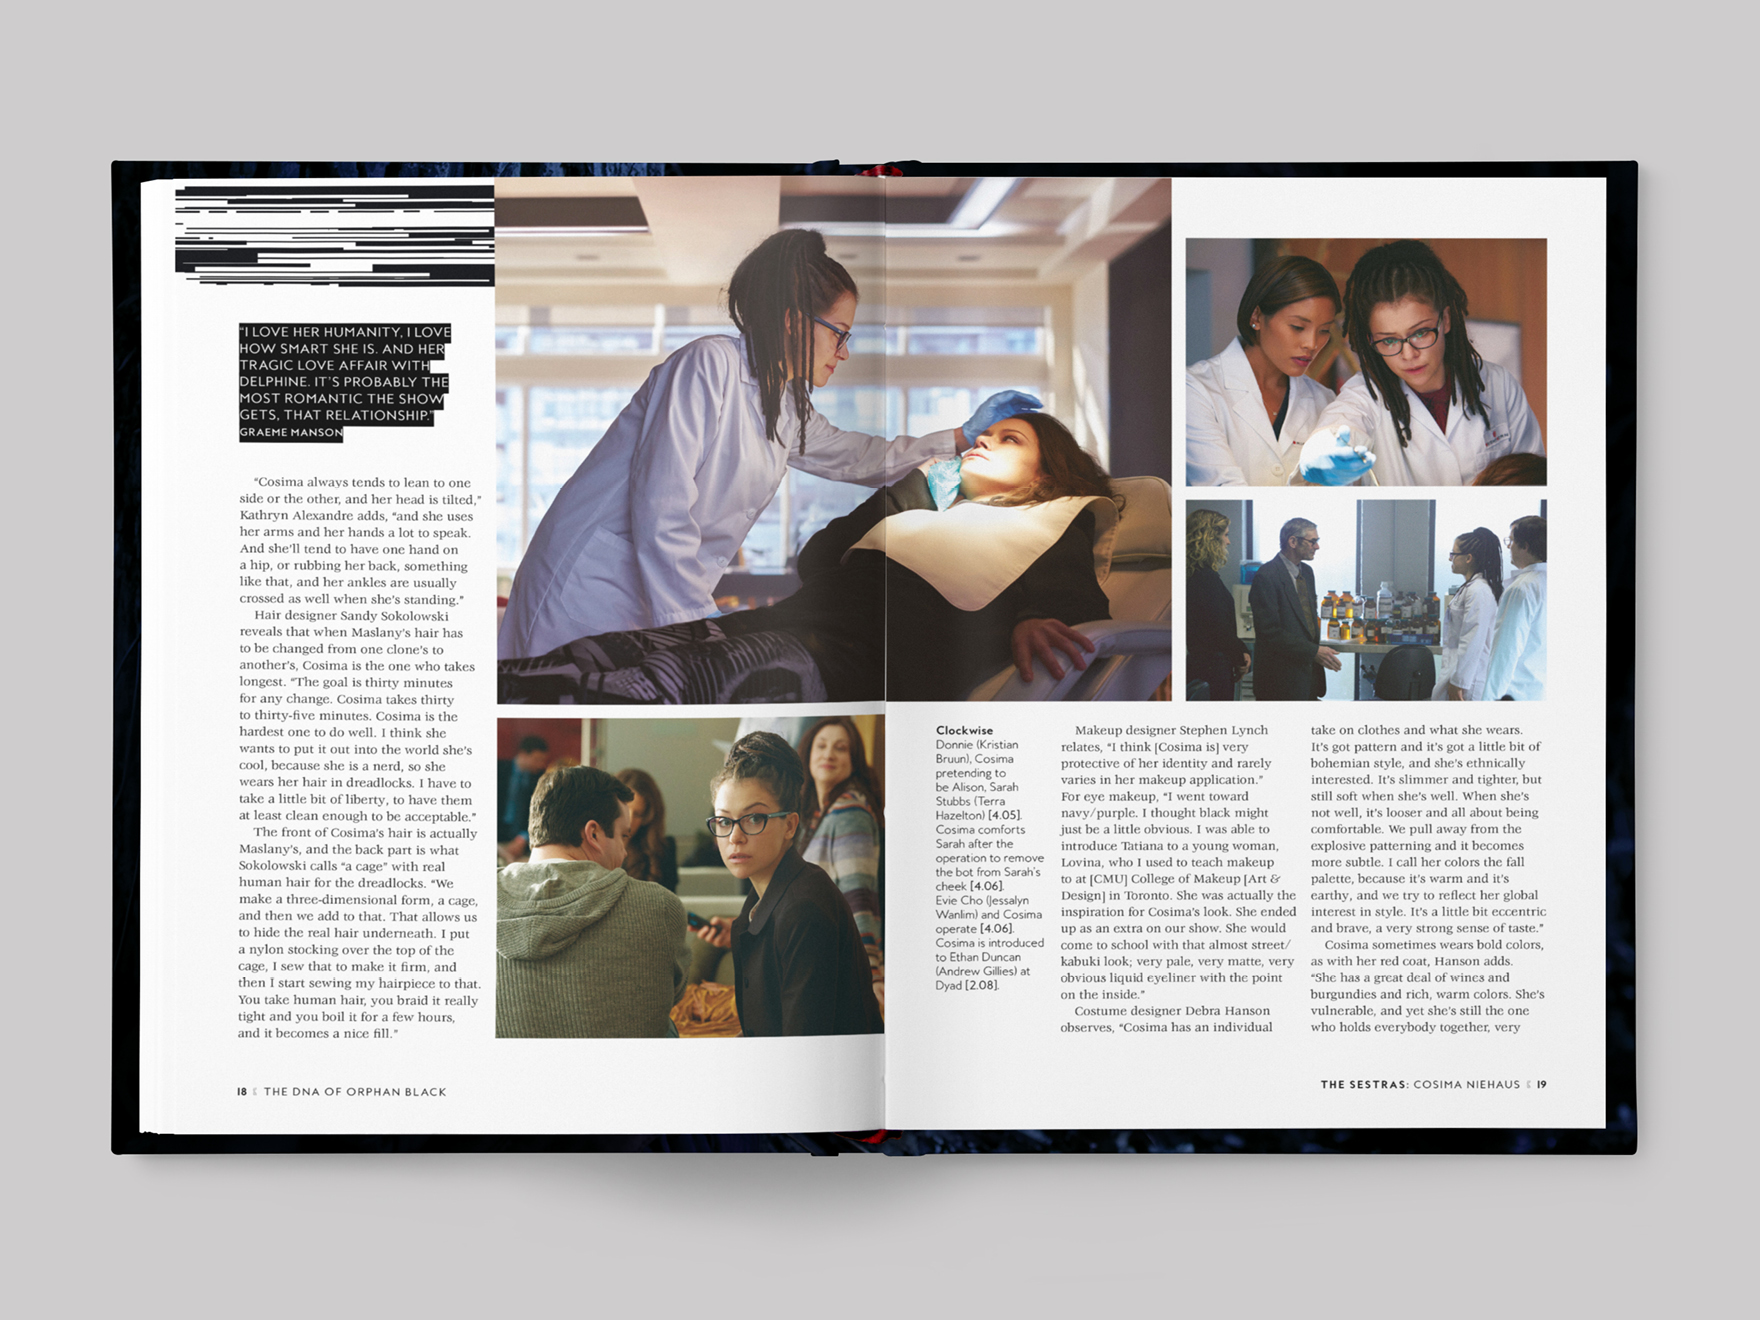 Inside pages from The DNA of Orphan Black book about the character of Cosima Niehaus